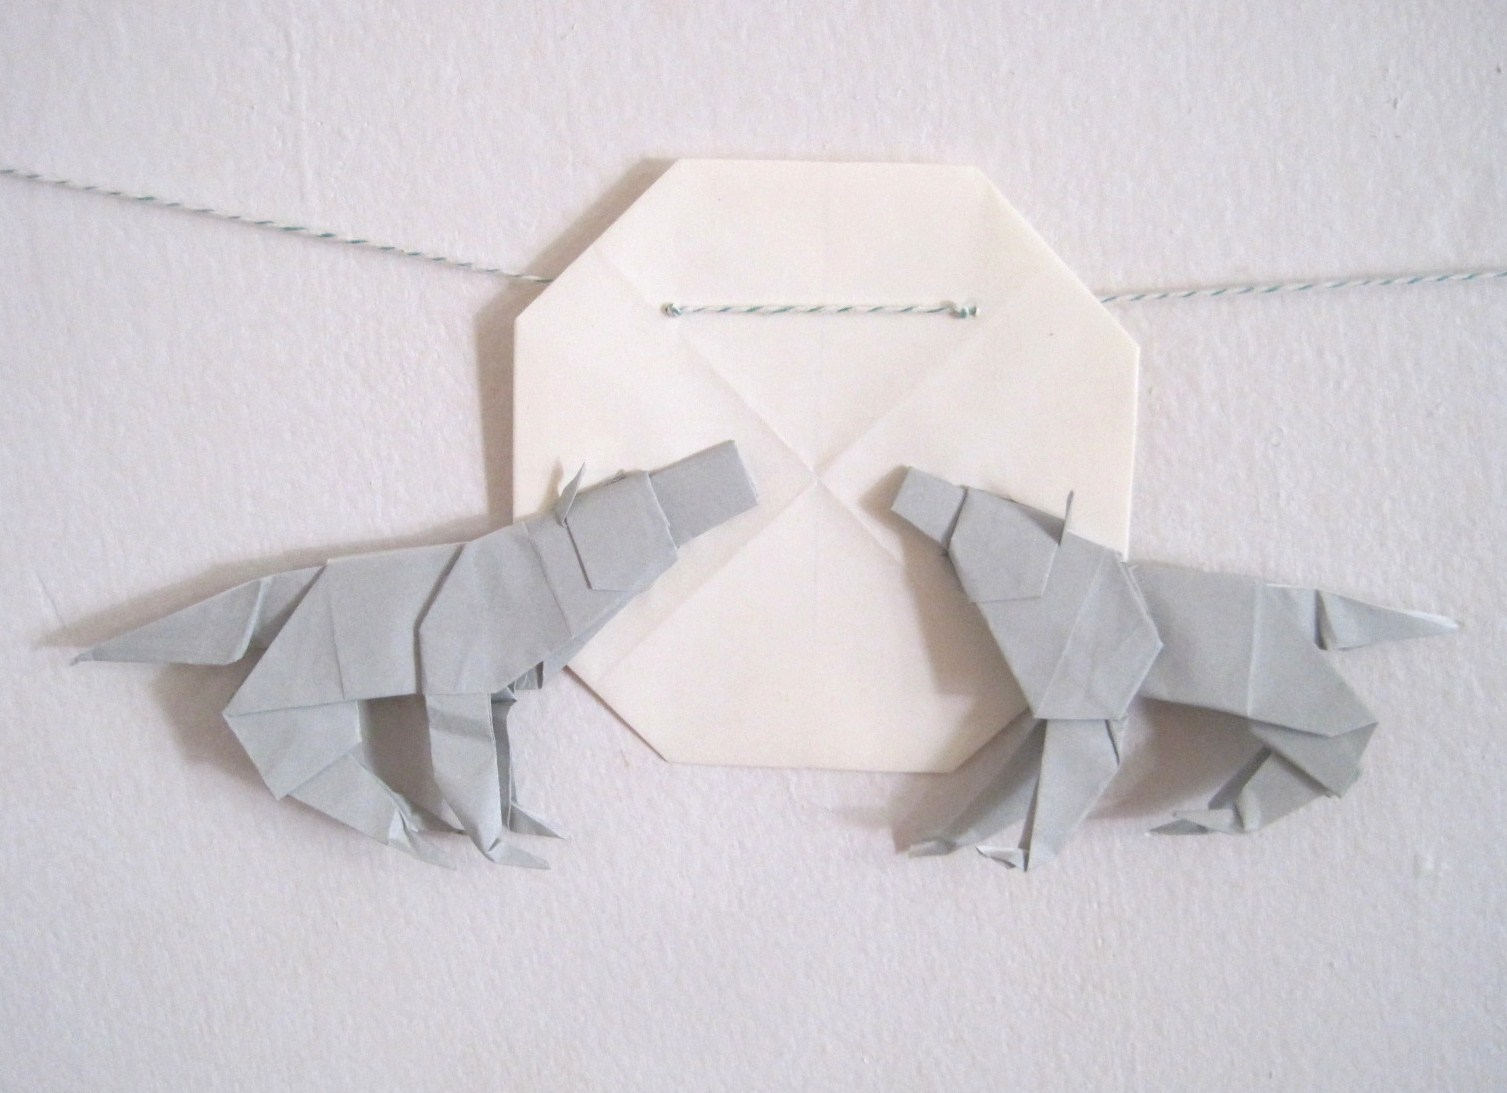 How To Make A Origami Wolf Origami Wolf Instructions